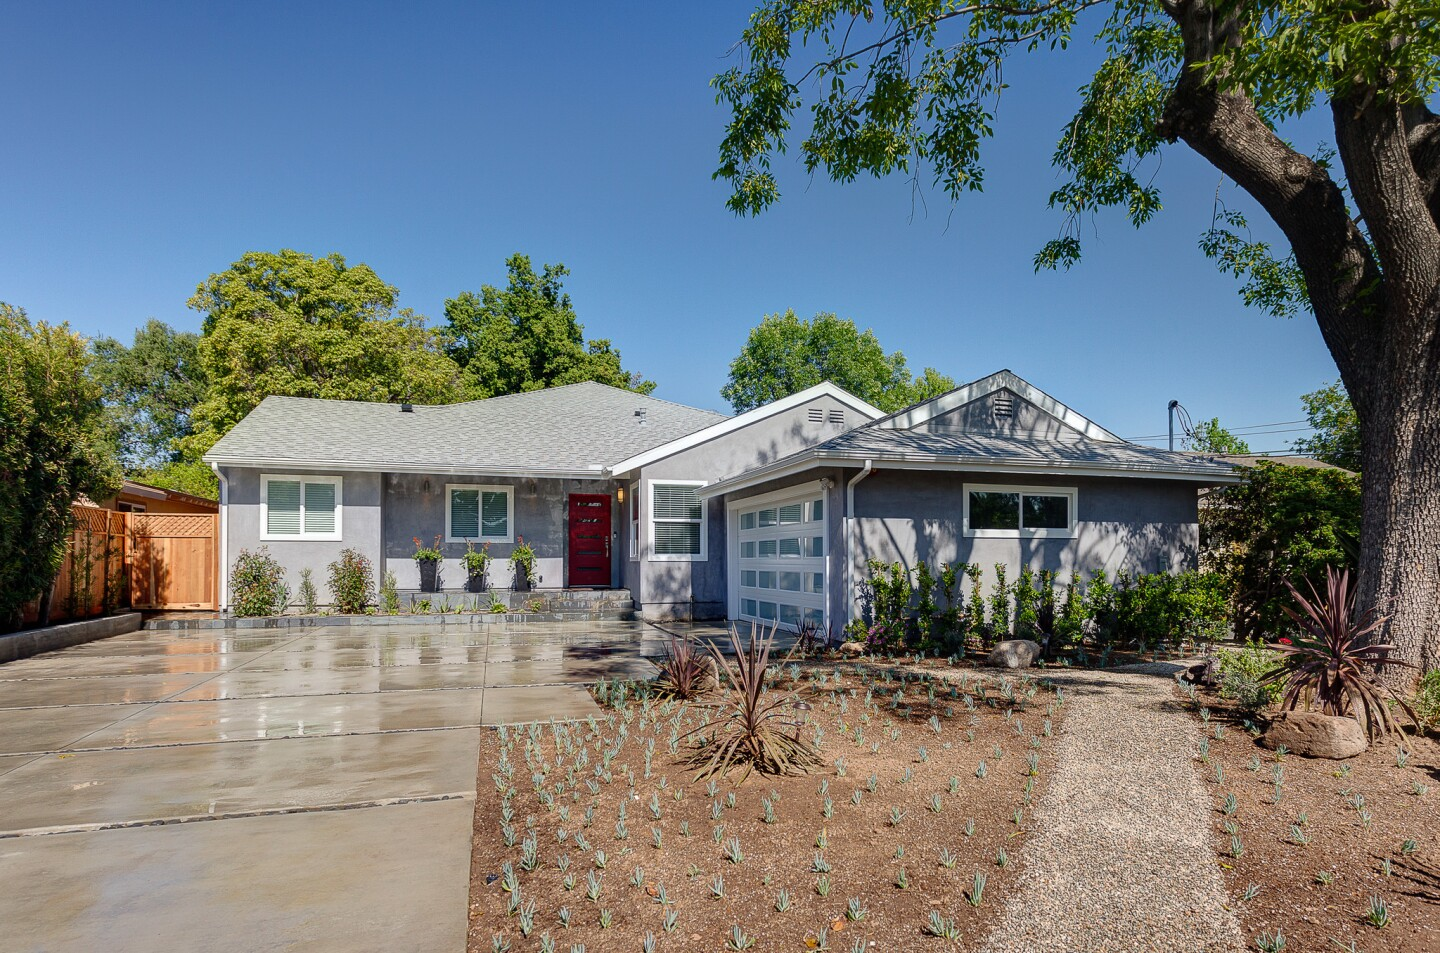 Home of the Day: New and improved in Pasadena